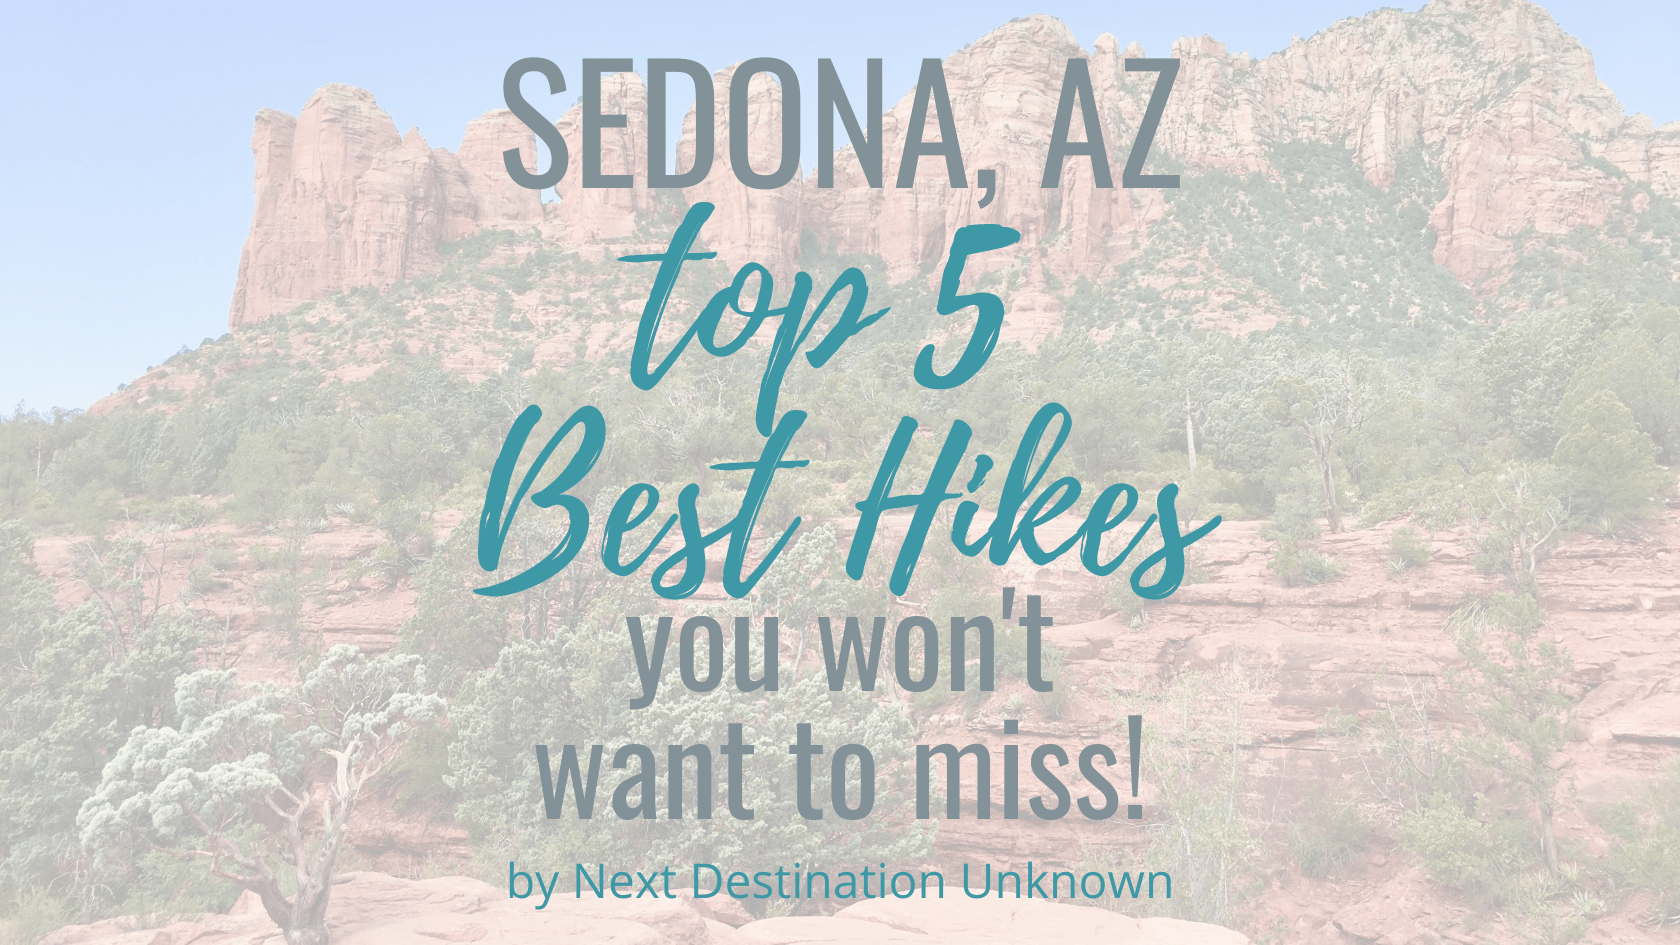 Top 5 Best Hikes in Sedona, AZ You Won't Want to Miss